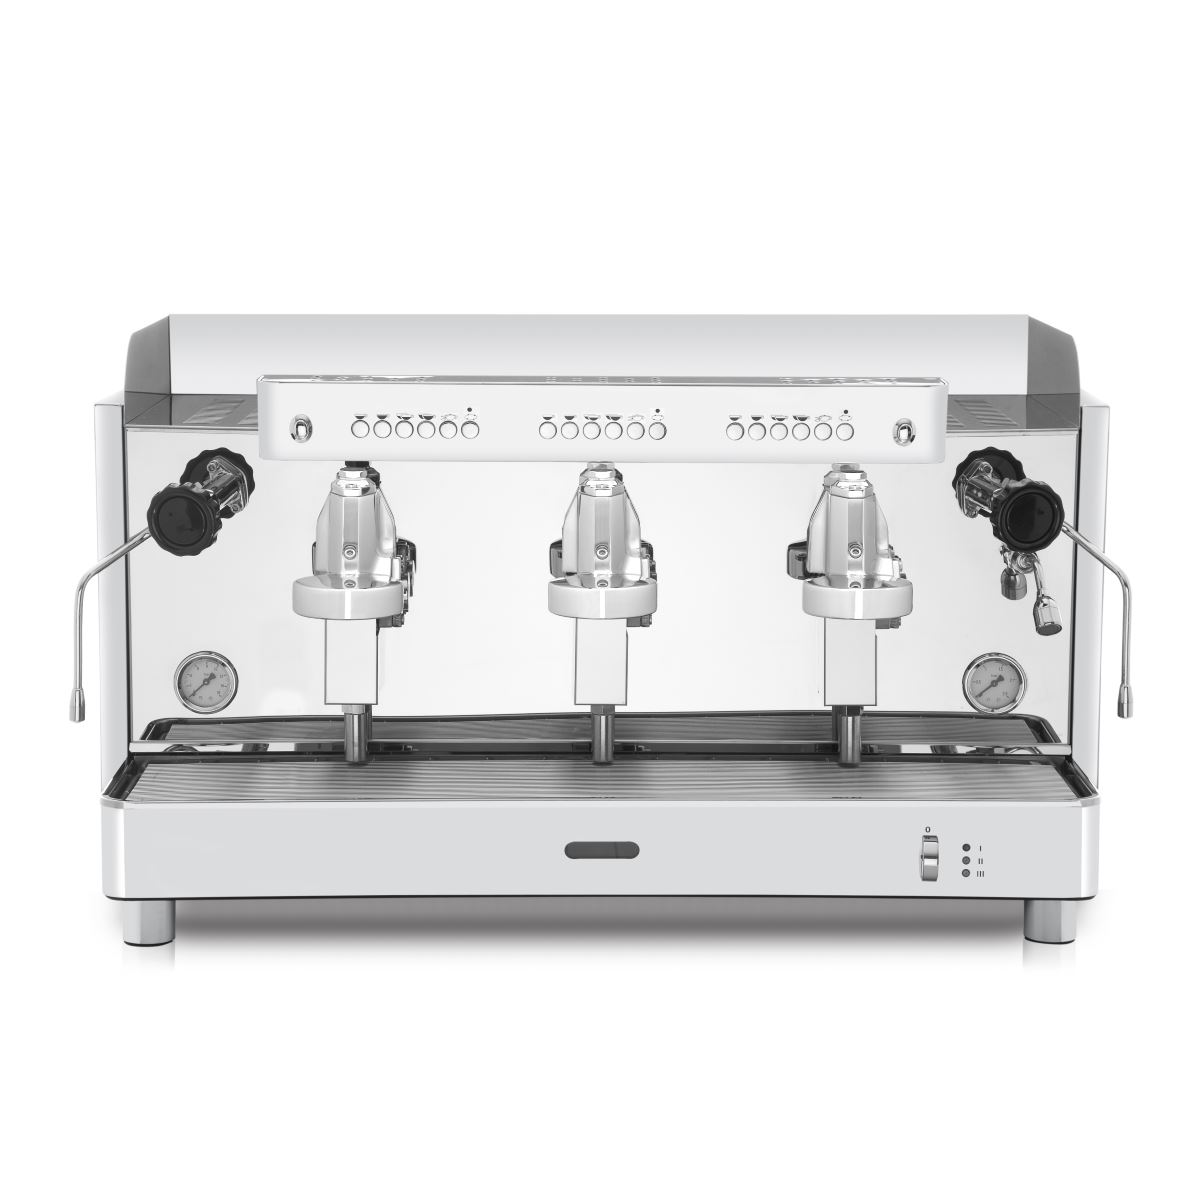 Professional coffee machine Vibiemme Replica 2B Elettronica, 3 groups